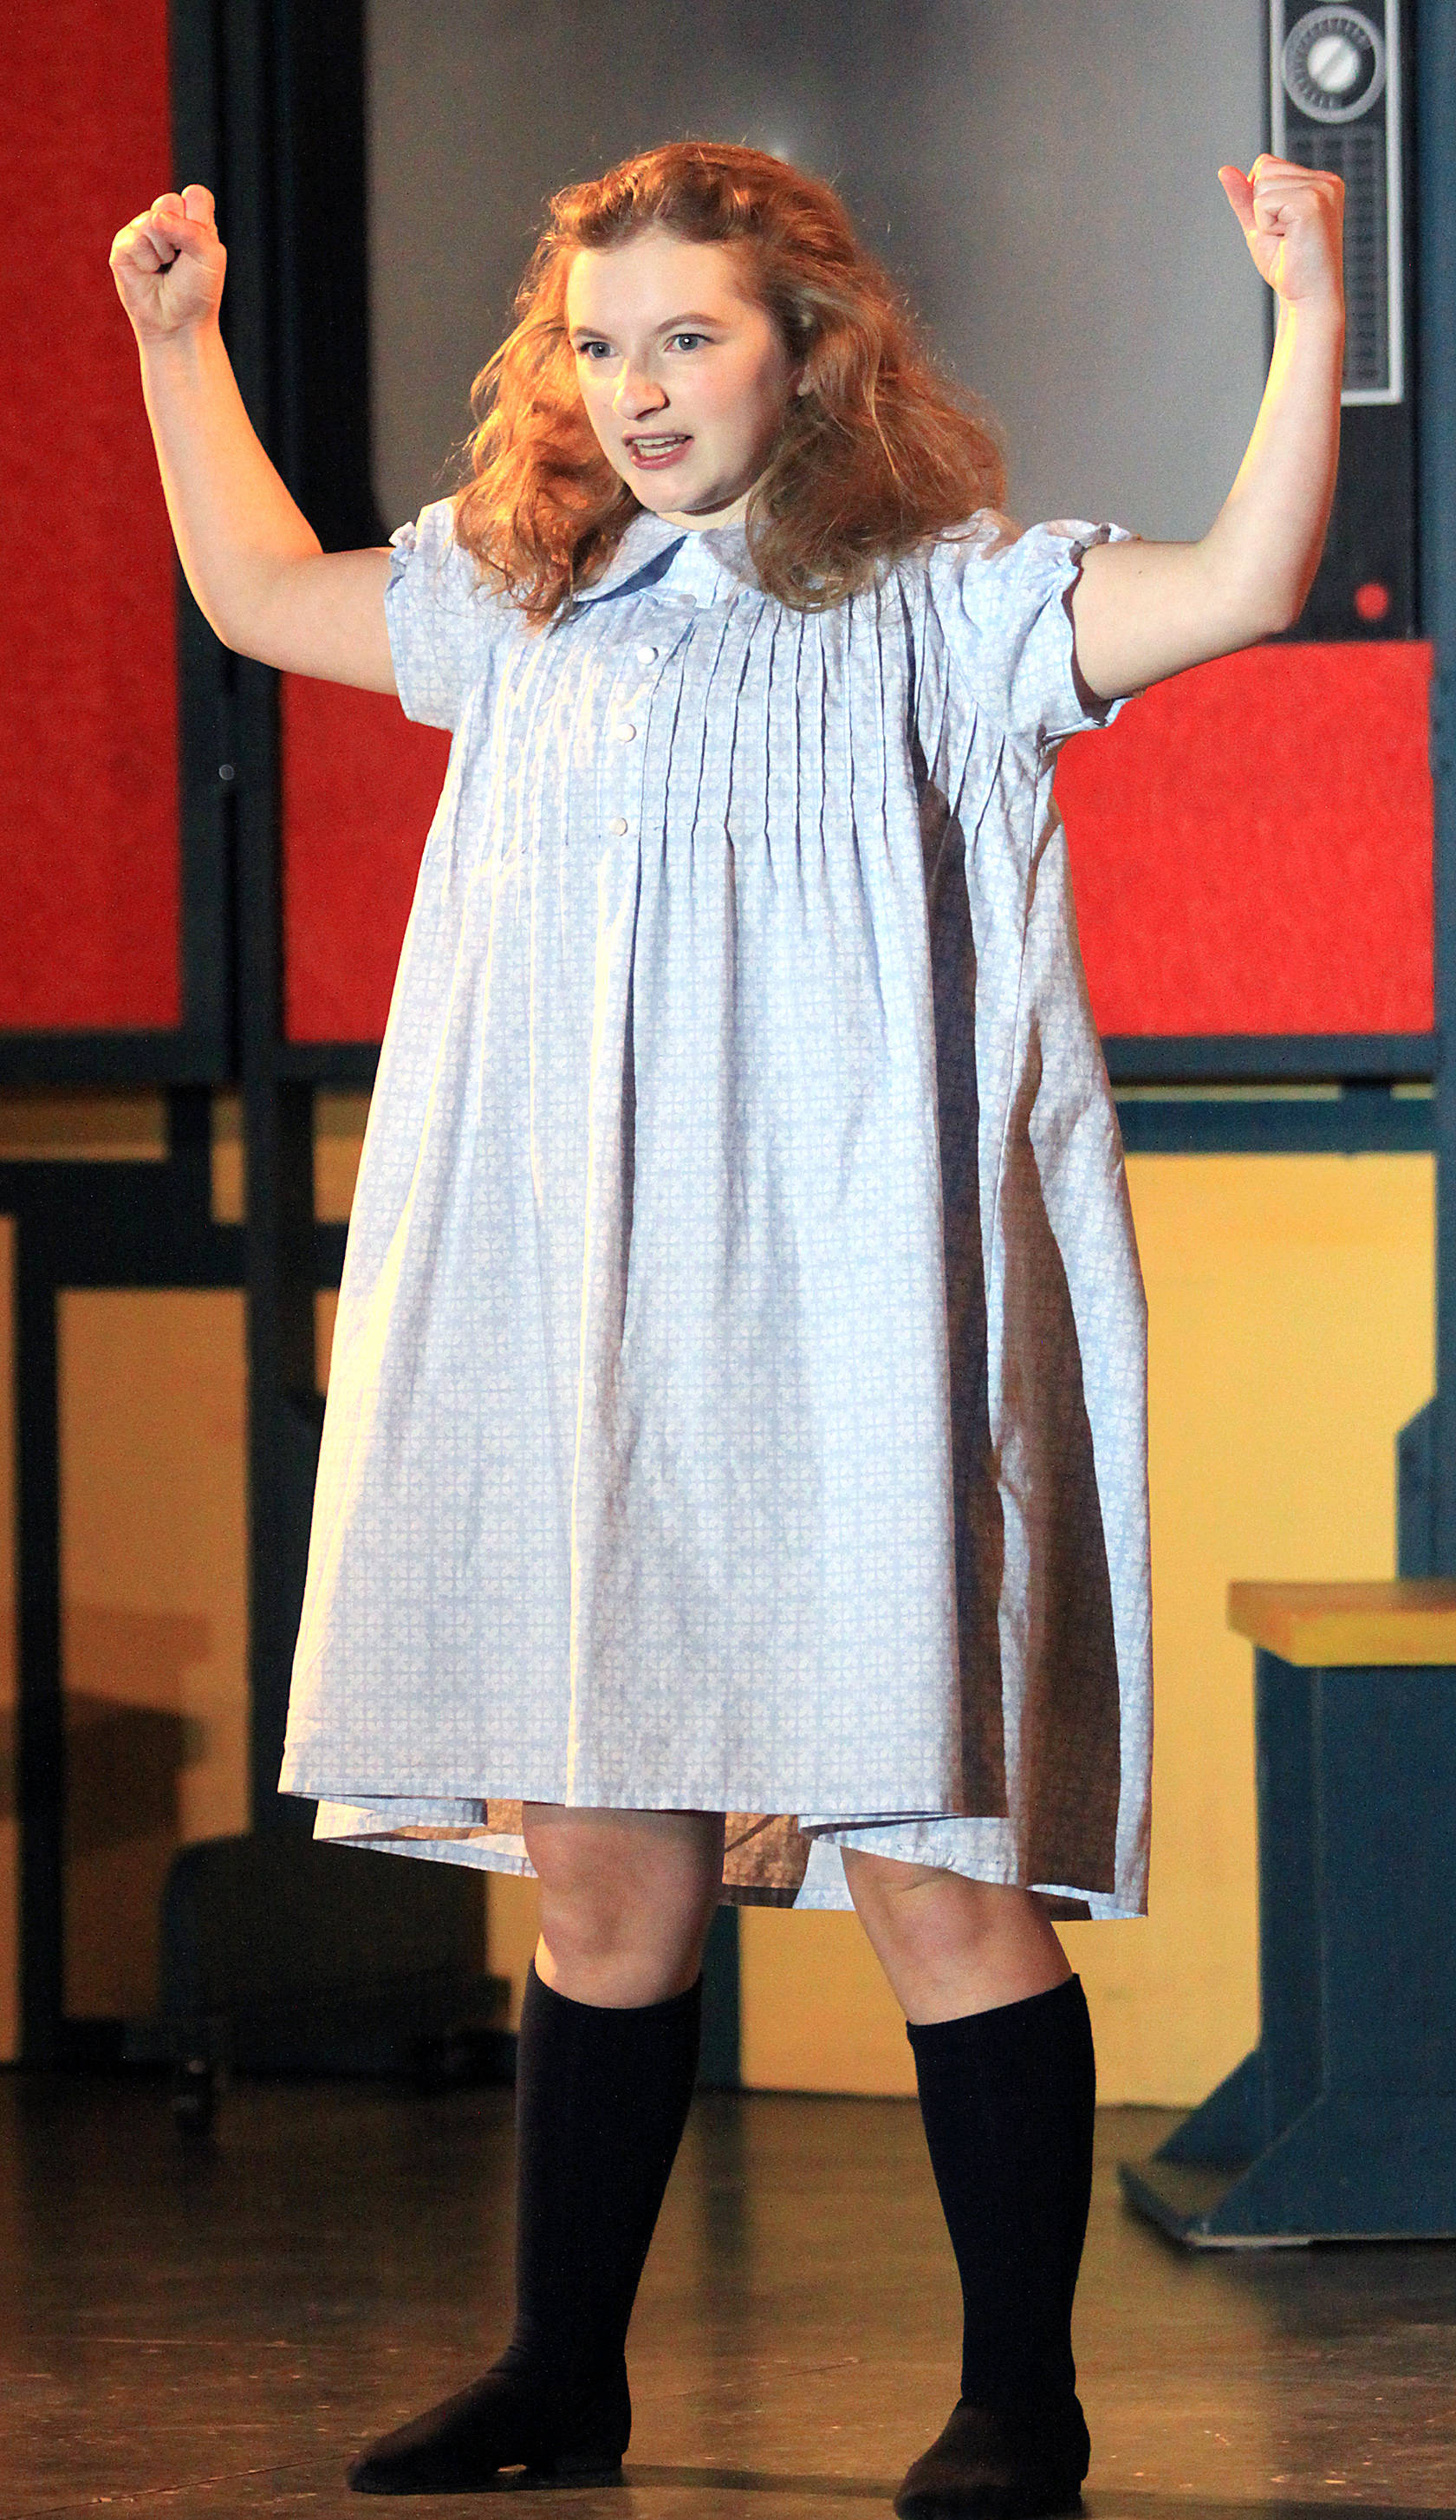 Matilda (Emma Webovesky) shows she will be strong and demonstrate courage in going to school as she sings Naughty in the opening act of the Bashaw Community Theatre's production of Matilda The Musical at the Bashaw United Church Nov. 21.                                Photos by Jordie Dwyer